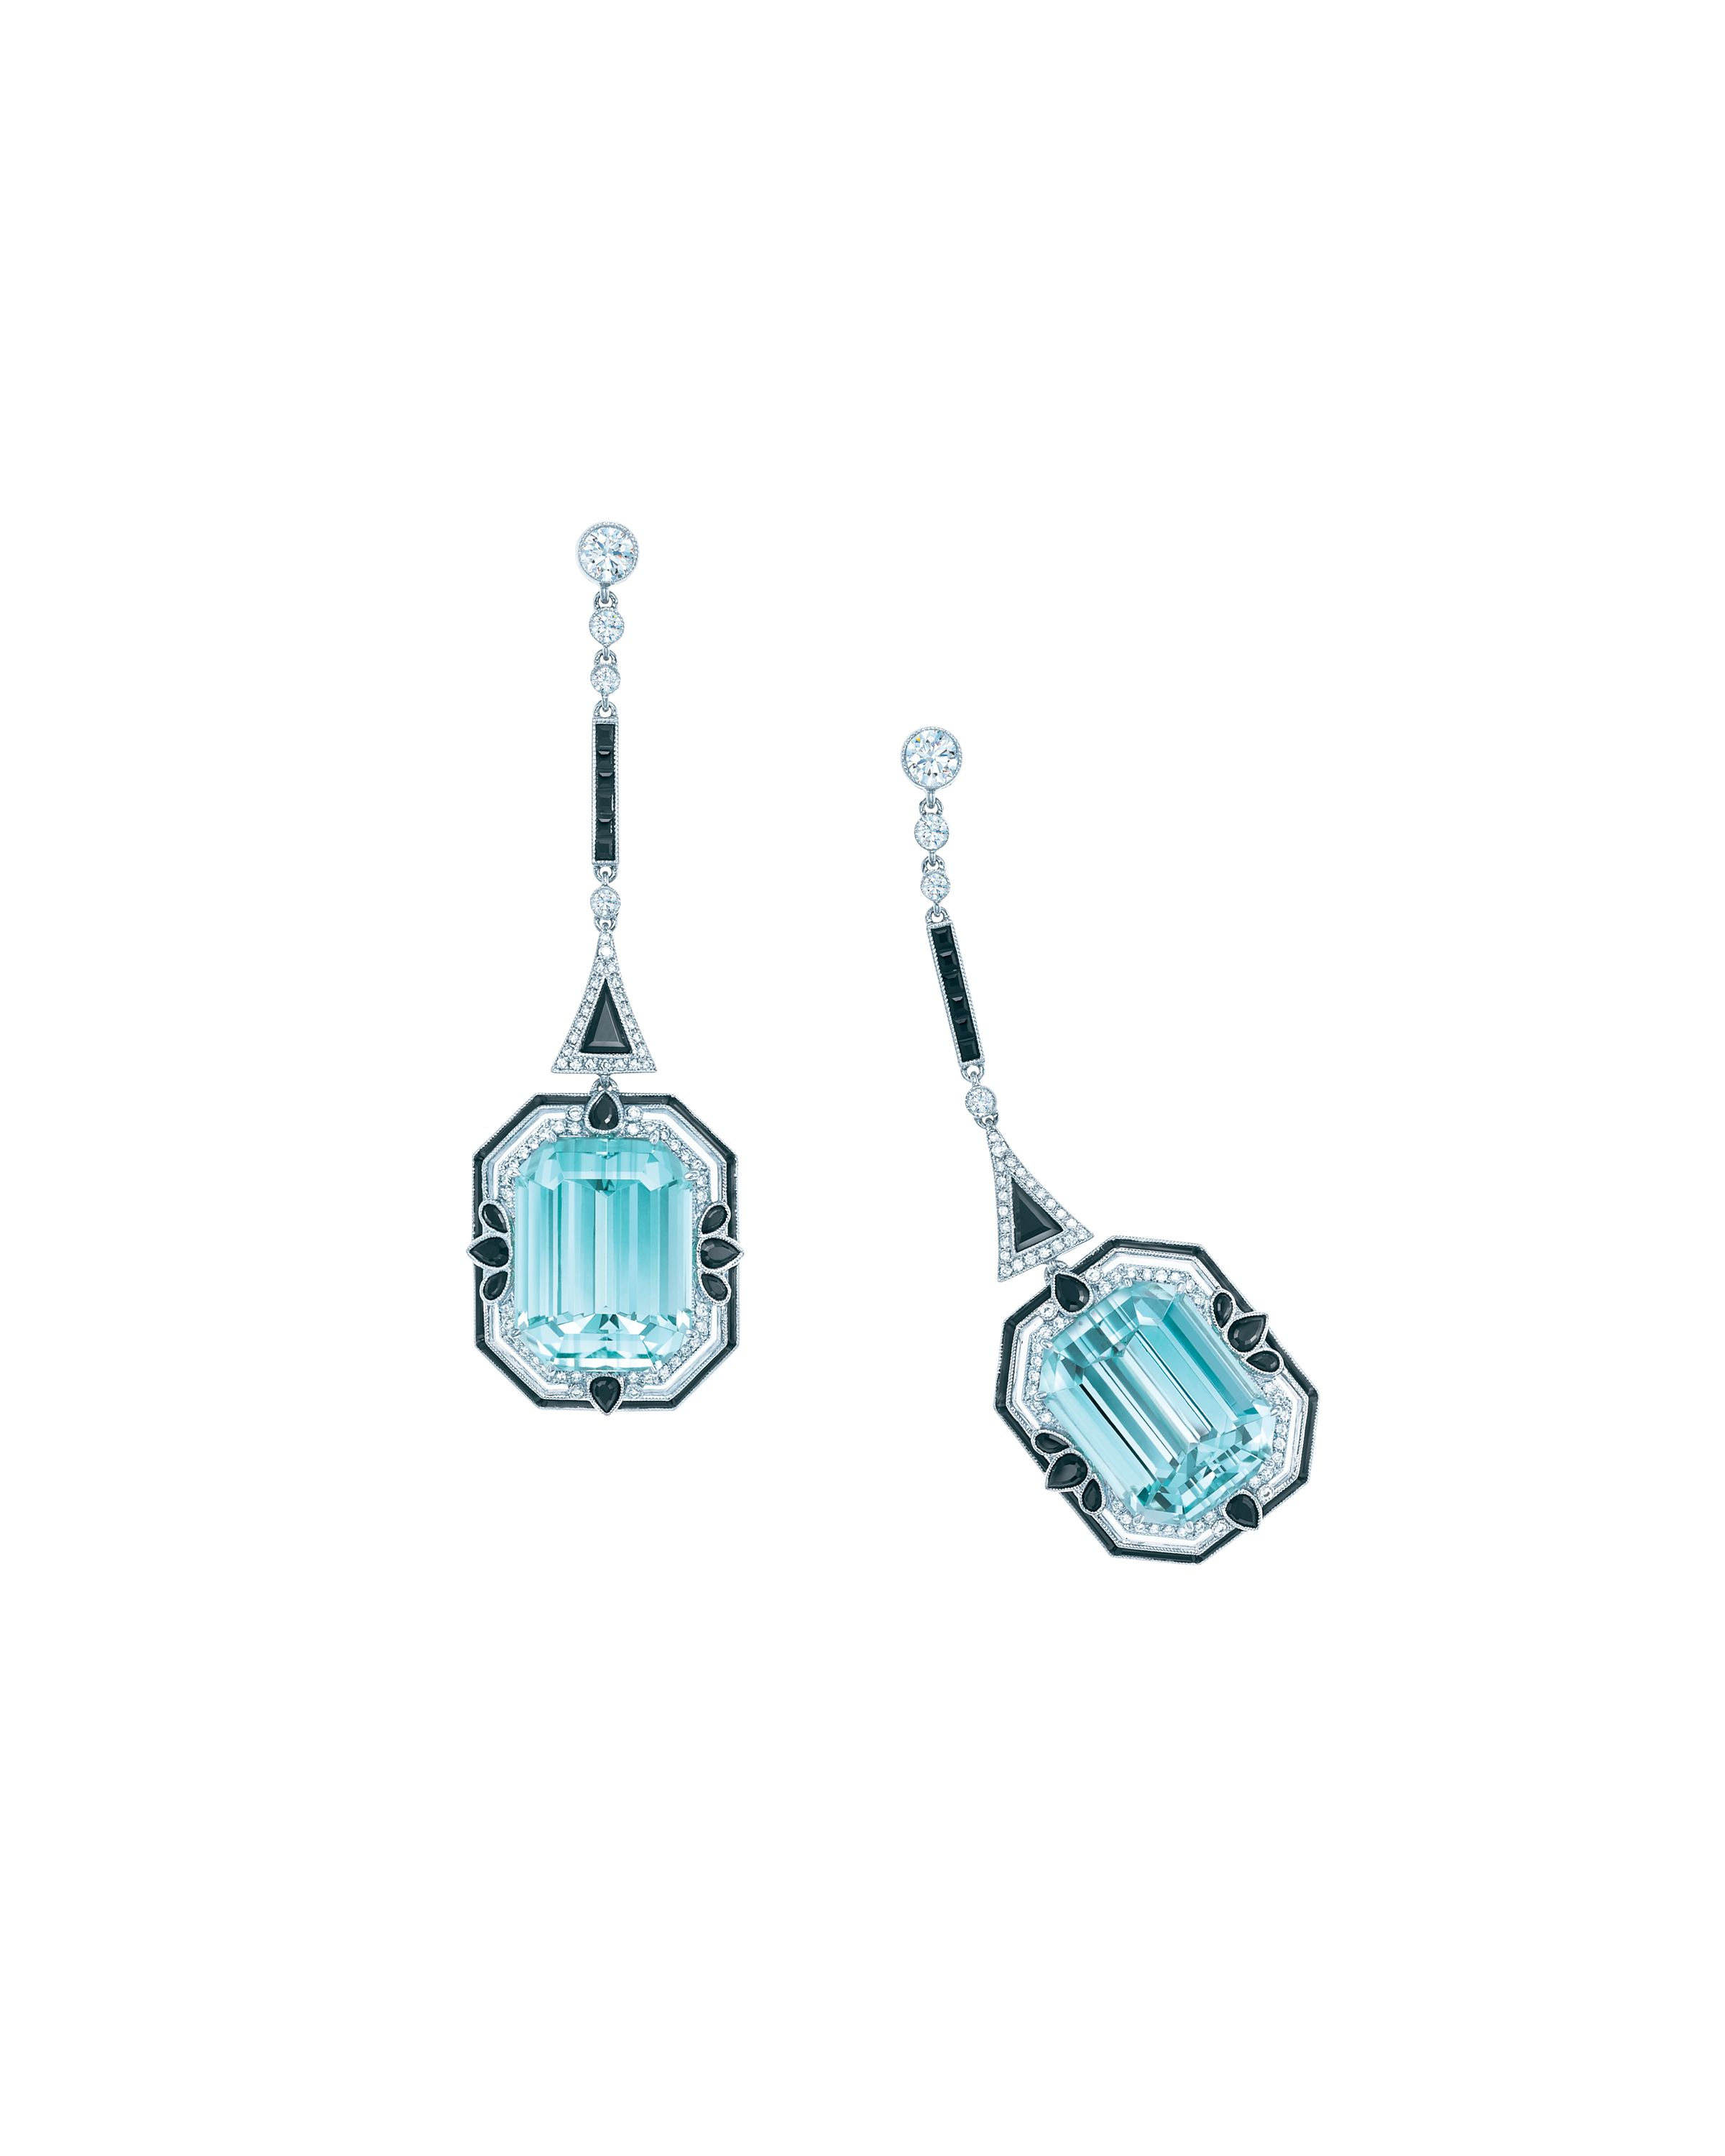 nyr jewels co christie s christies tiffany online earrings fireworks diamond